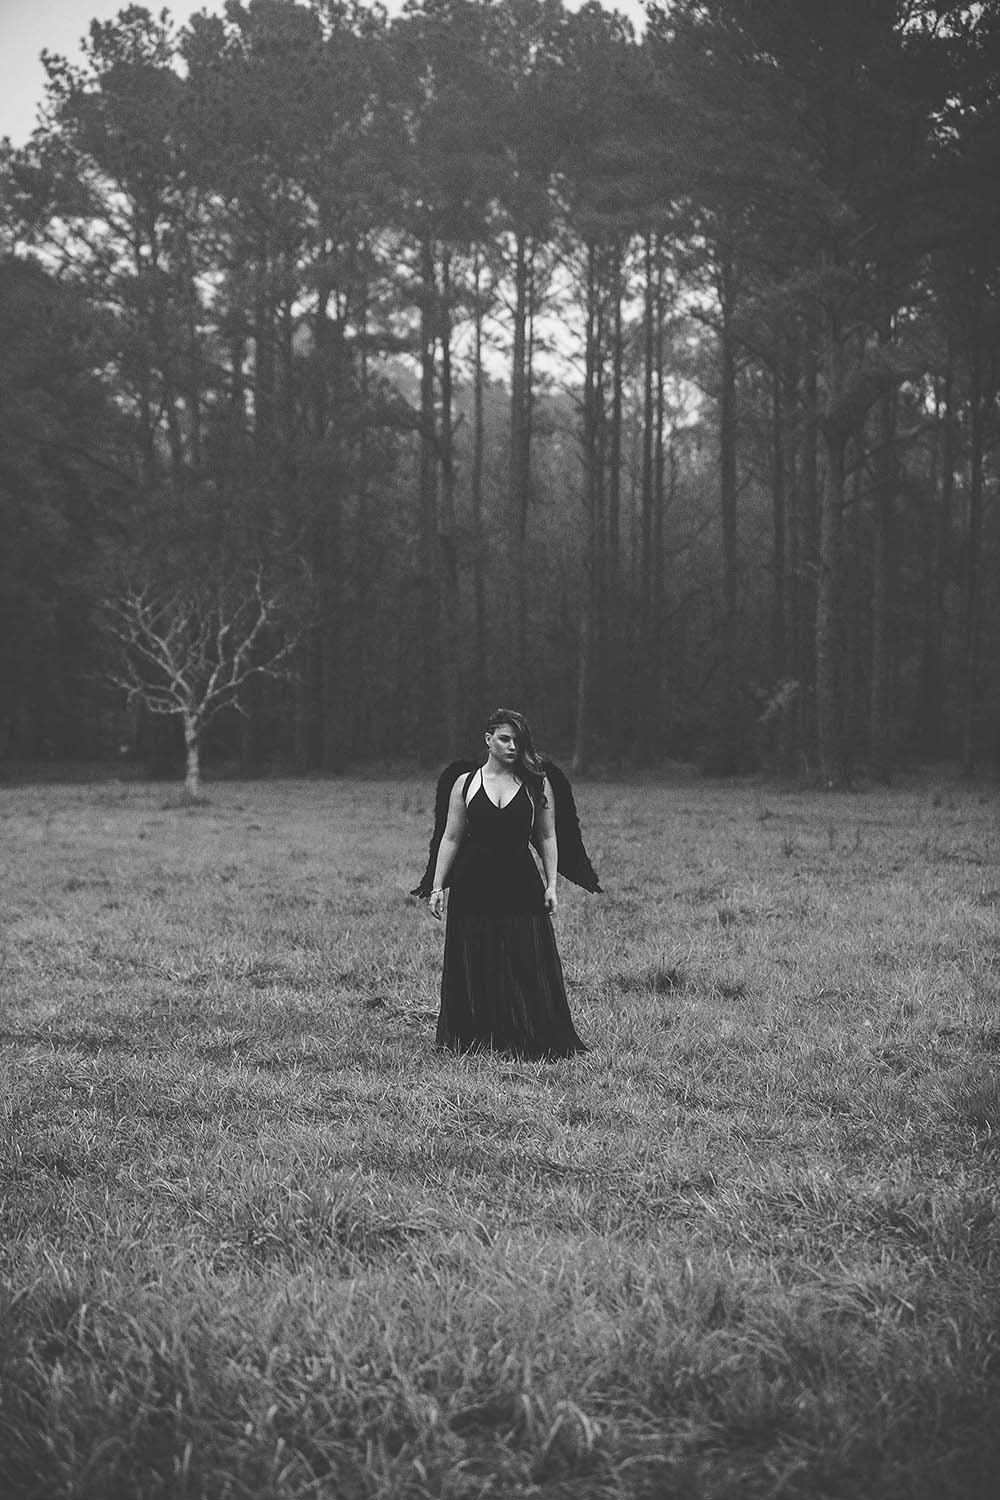 black-and-white-dark-angel-moody-erie-foggy-morning-mysterious-breaking-tradition-jacksonville-fl